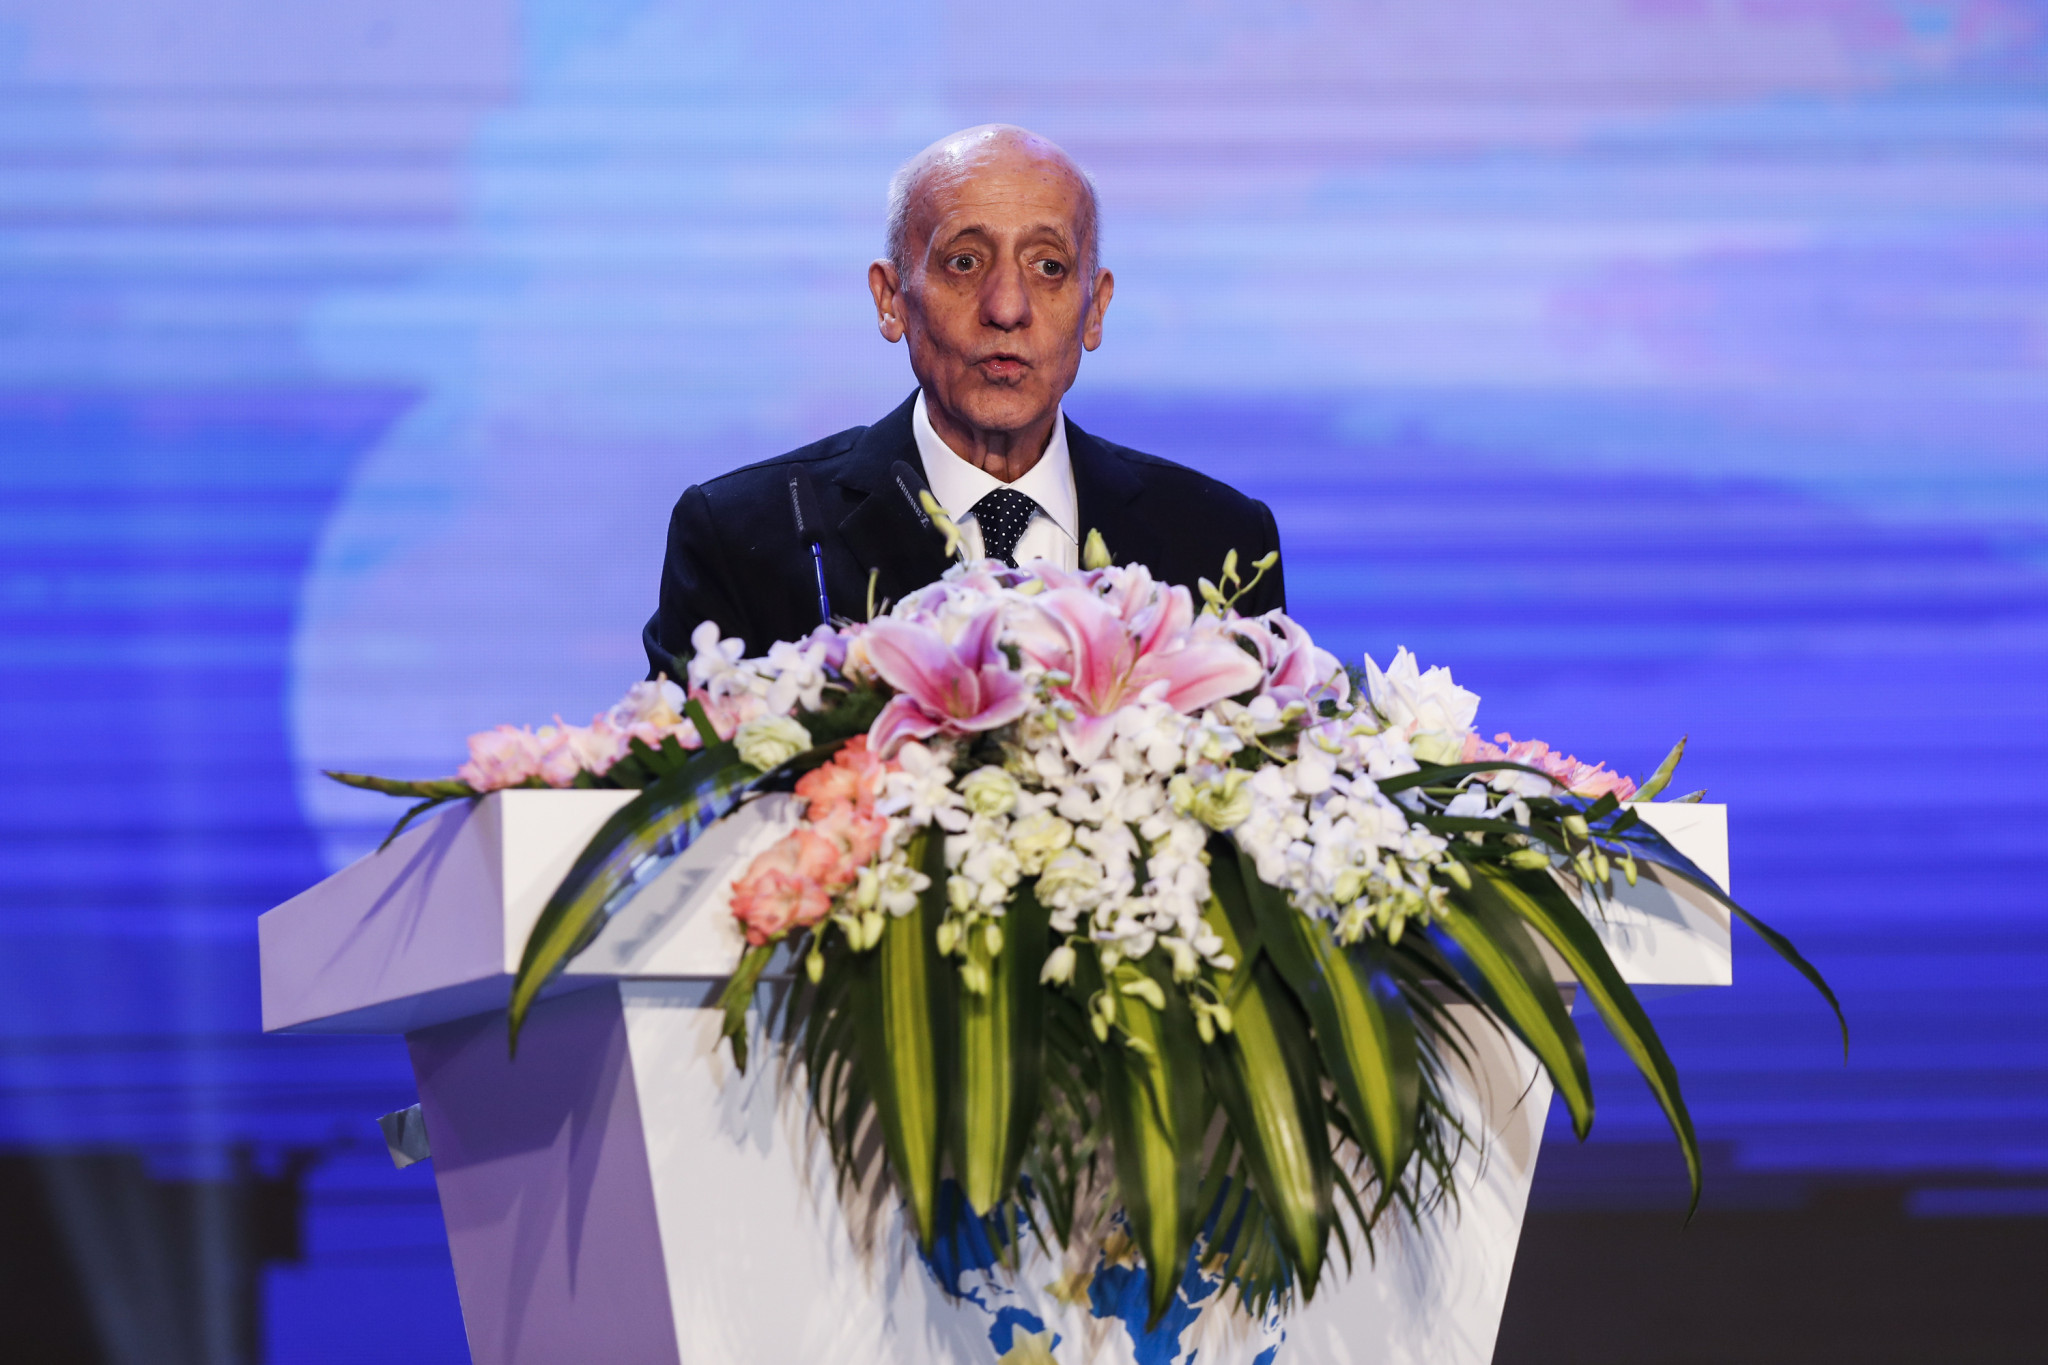 Julio Maglione is set to step down as International Swimming Federation President later this year ©Getty Images